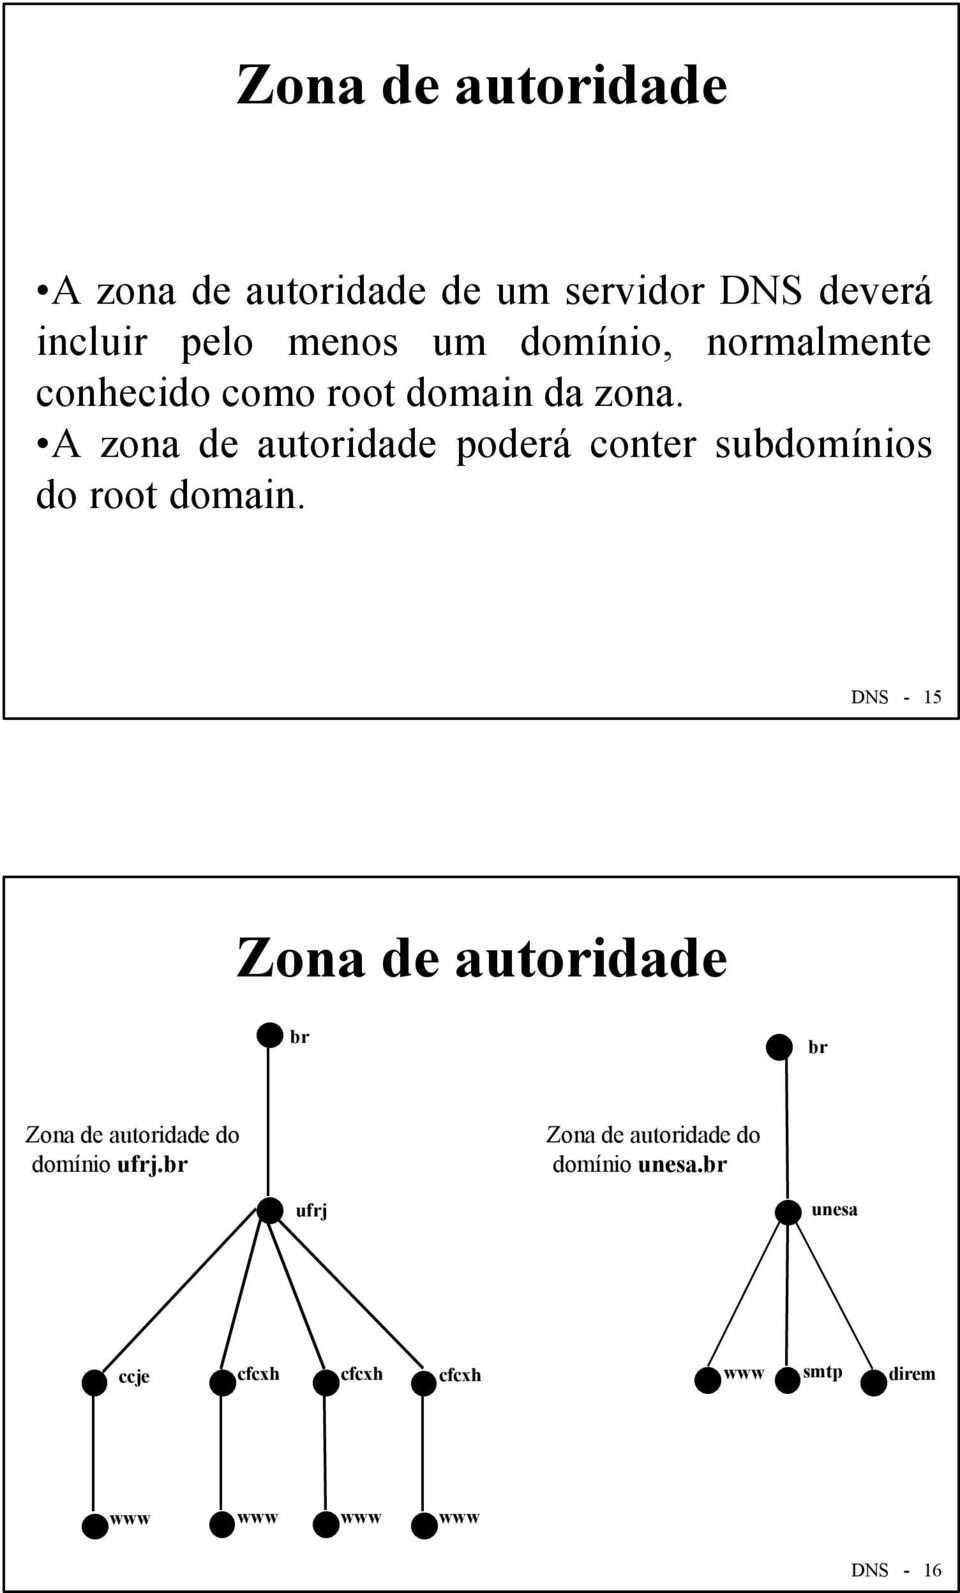 A zona de autoridade poderá conter subdomínios do root domain.